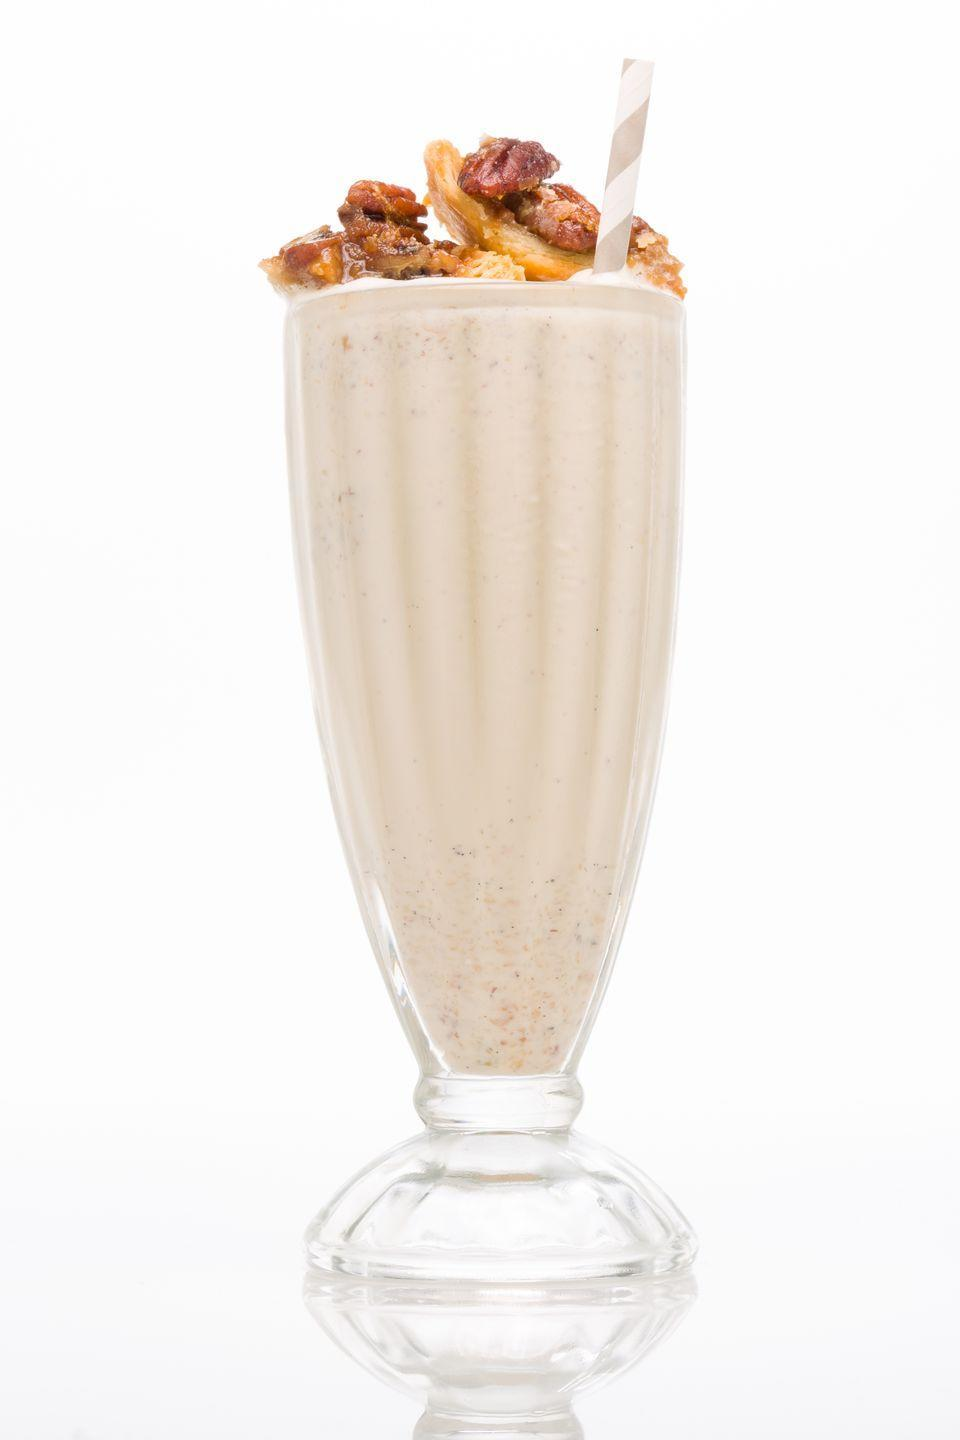 """<p>This is the one time you want to make sure you don't eat all the pecan pie.</p><p>Get the recipe from <a href=""""https://www.delish.com/cooking/recipe-ideas/recipes/a44645/leftover-pecan-pie-bourbon-shake-recipe/"""" rel=""""nofollow noopener"""" target=""""_blank"""" data-ylk=""""slk:Delish"""" class=""""link rapid-noclick-resp"""">Delish</a>.</p>"""